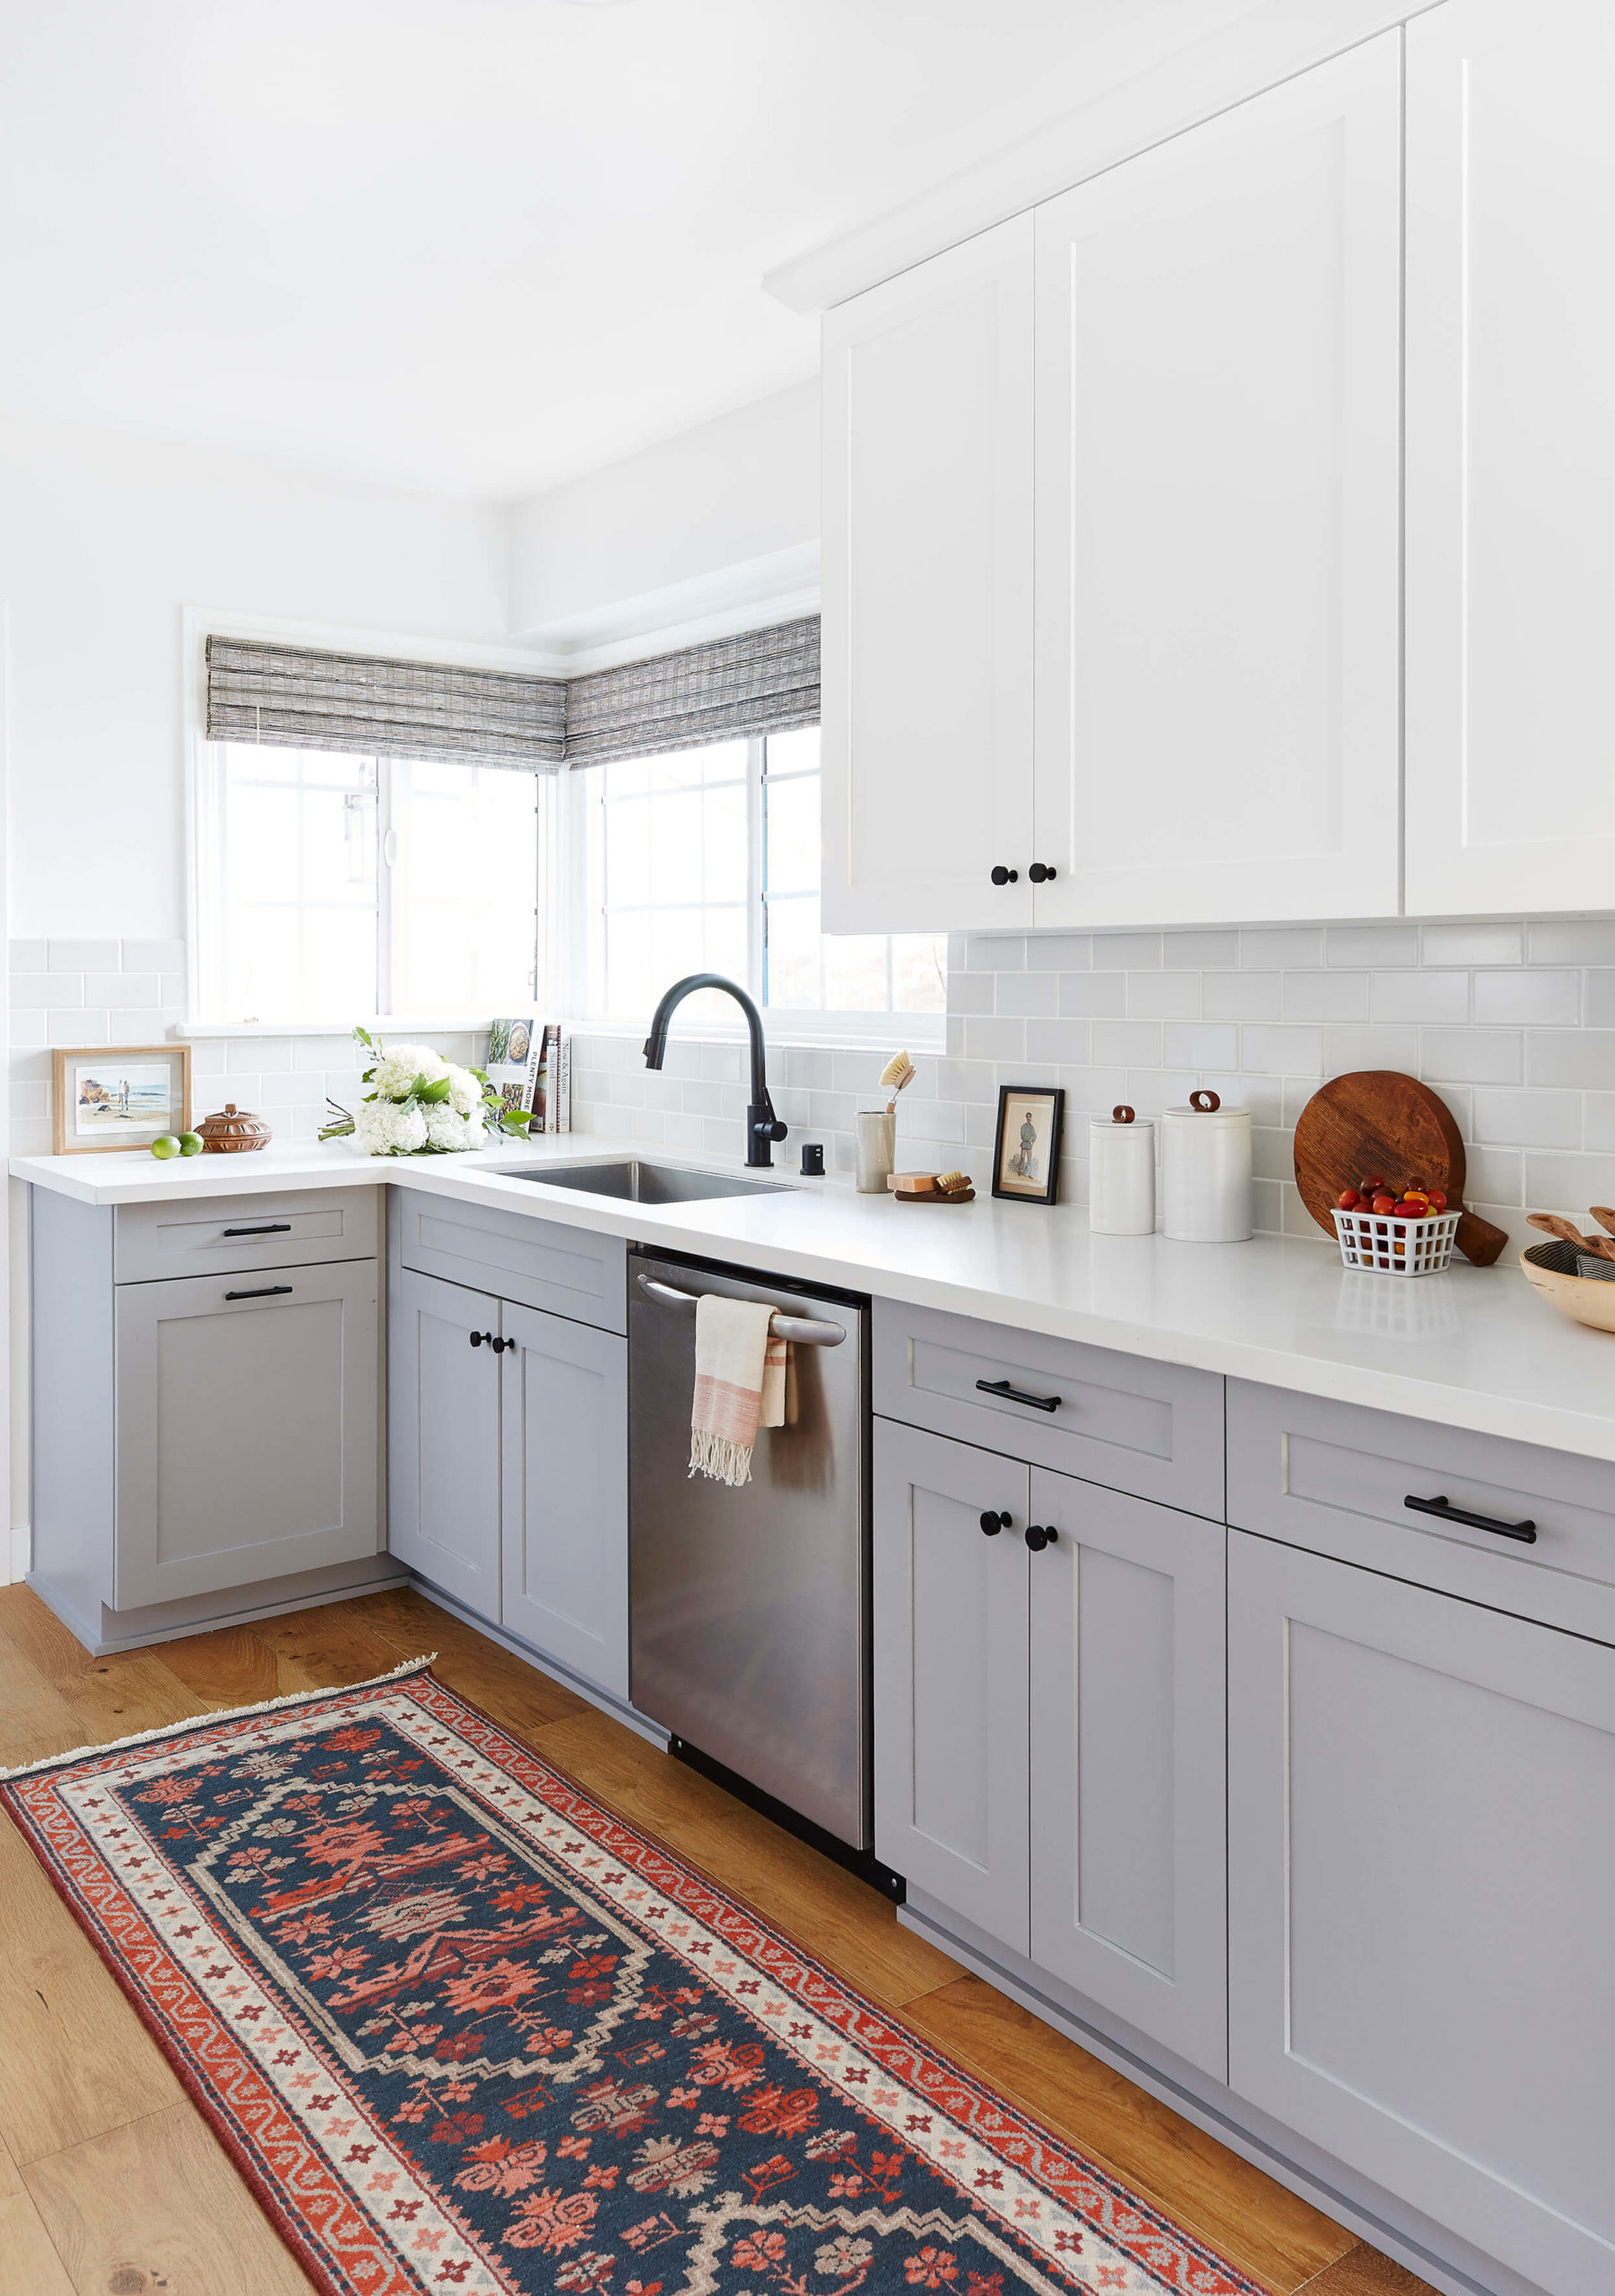 Grey shaker kitchen with tradtional rug interior design by Ginny Macdonald Design